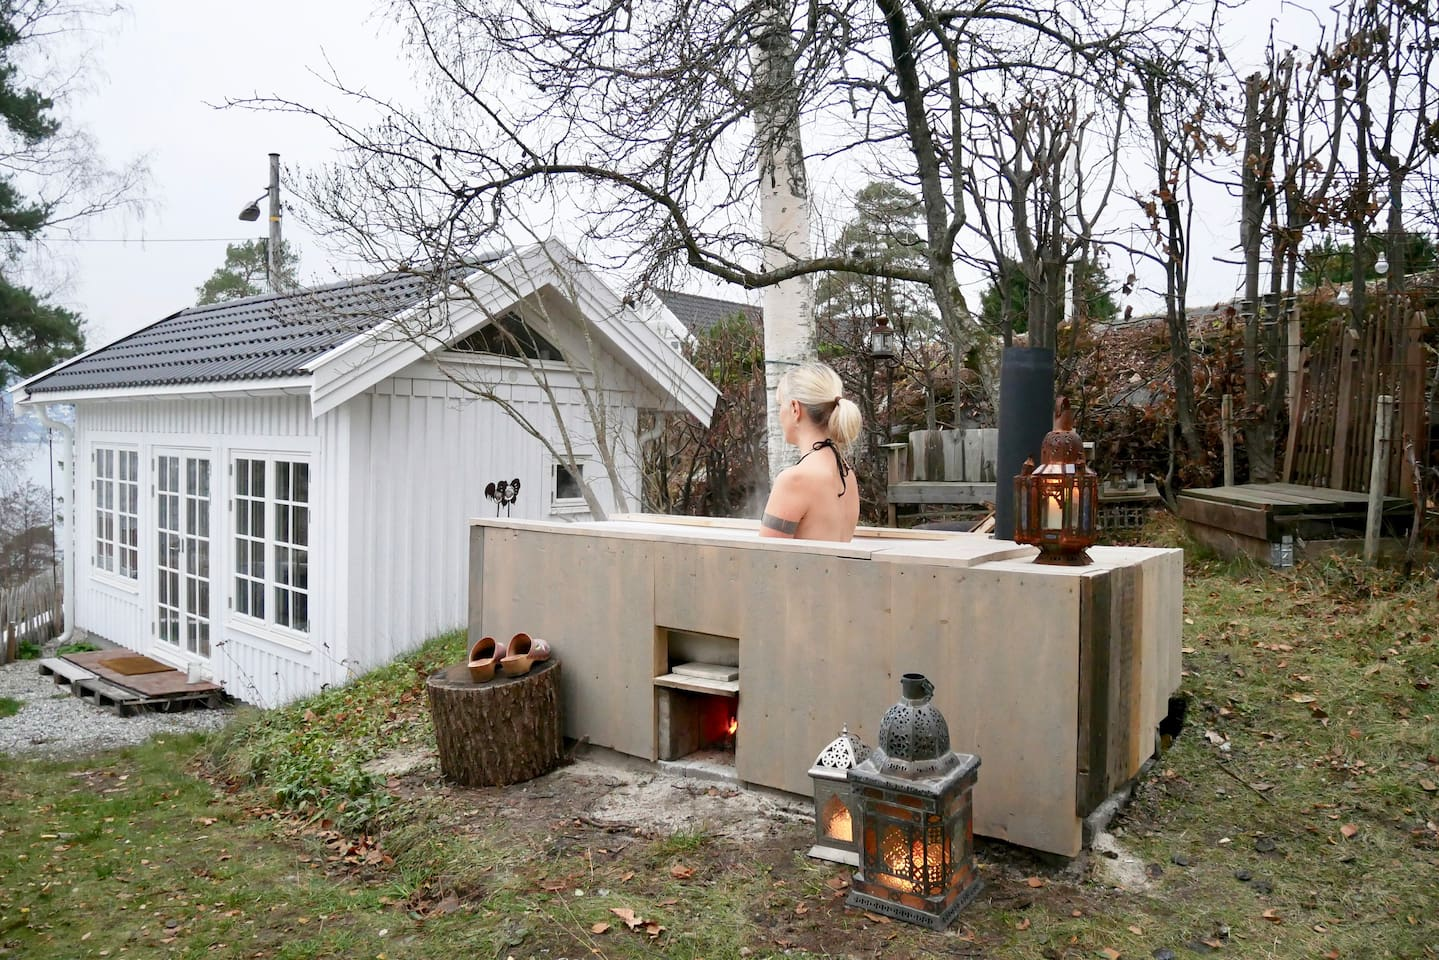 The woodfired outdoor bath is right next to the Tiny House with stunning views of the Oslo fjord. Fill the bathtub with warm water from a hose connected to the main house and keep it warm by lighting a fire in the underneath stove.